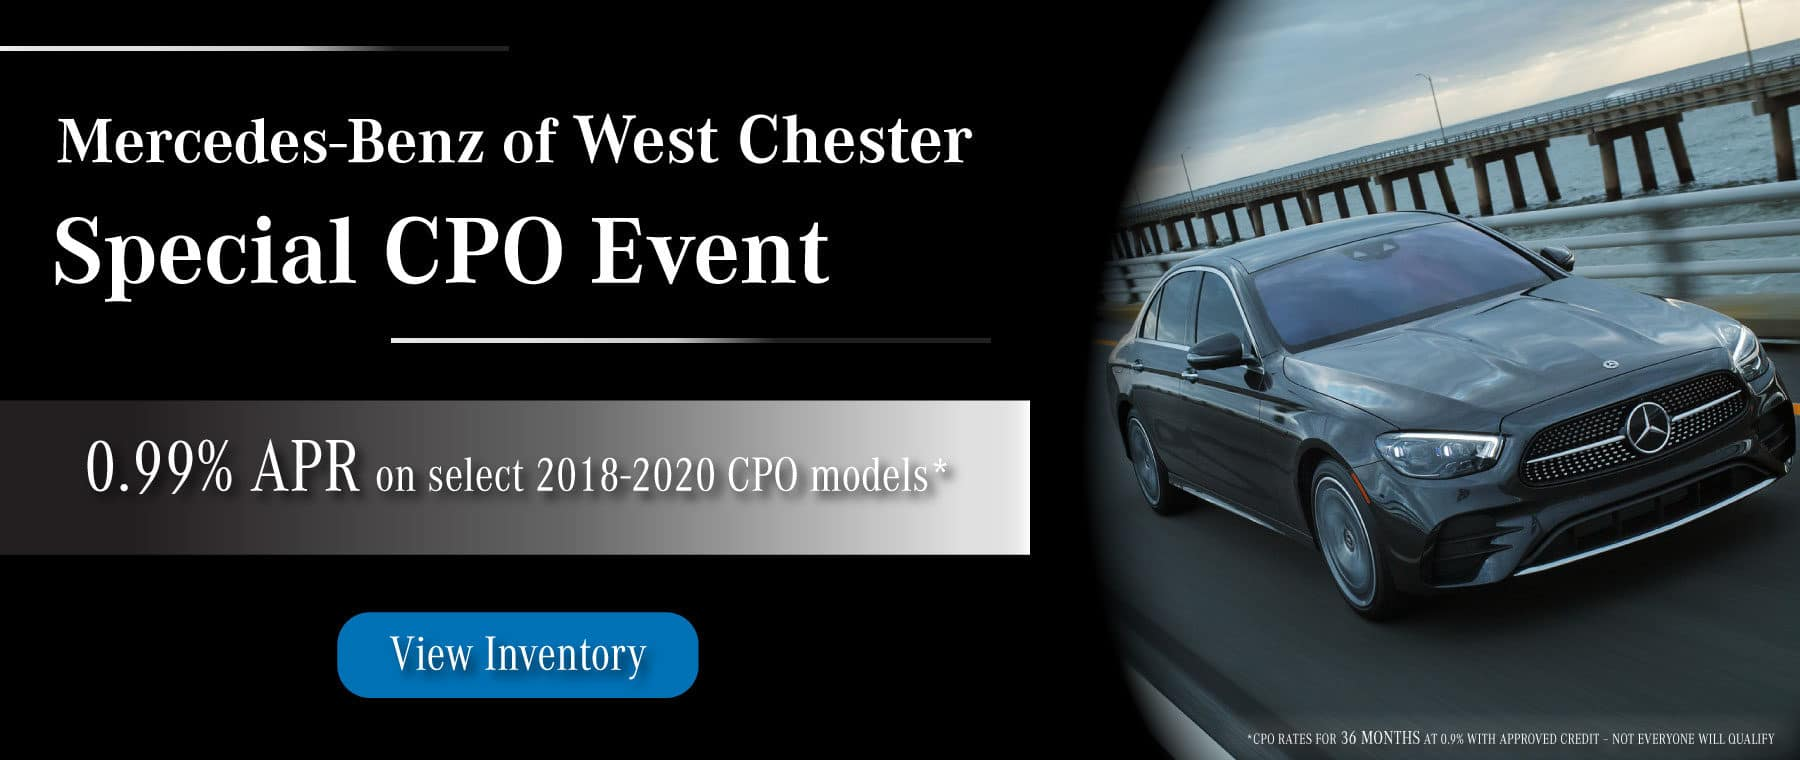 Mercedes-Benz of West Chester mercedes certified pre owned special event